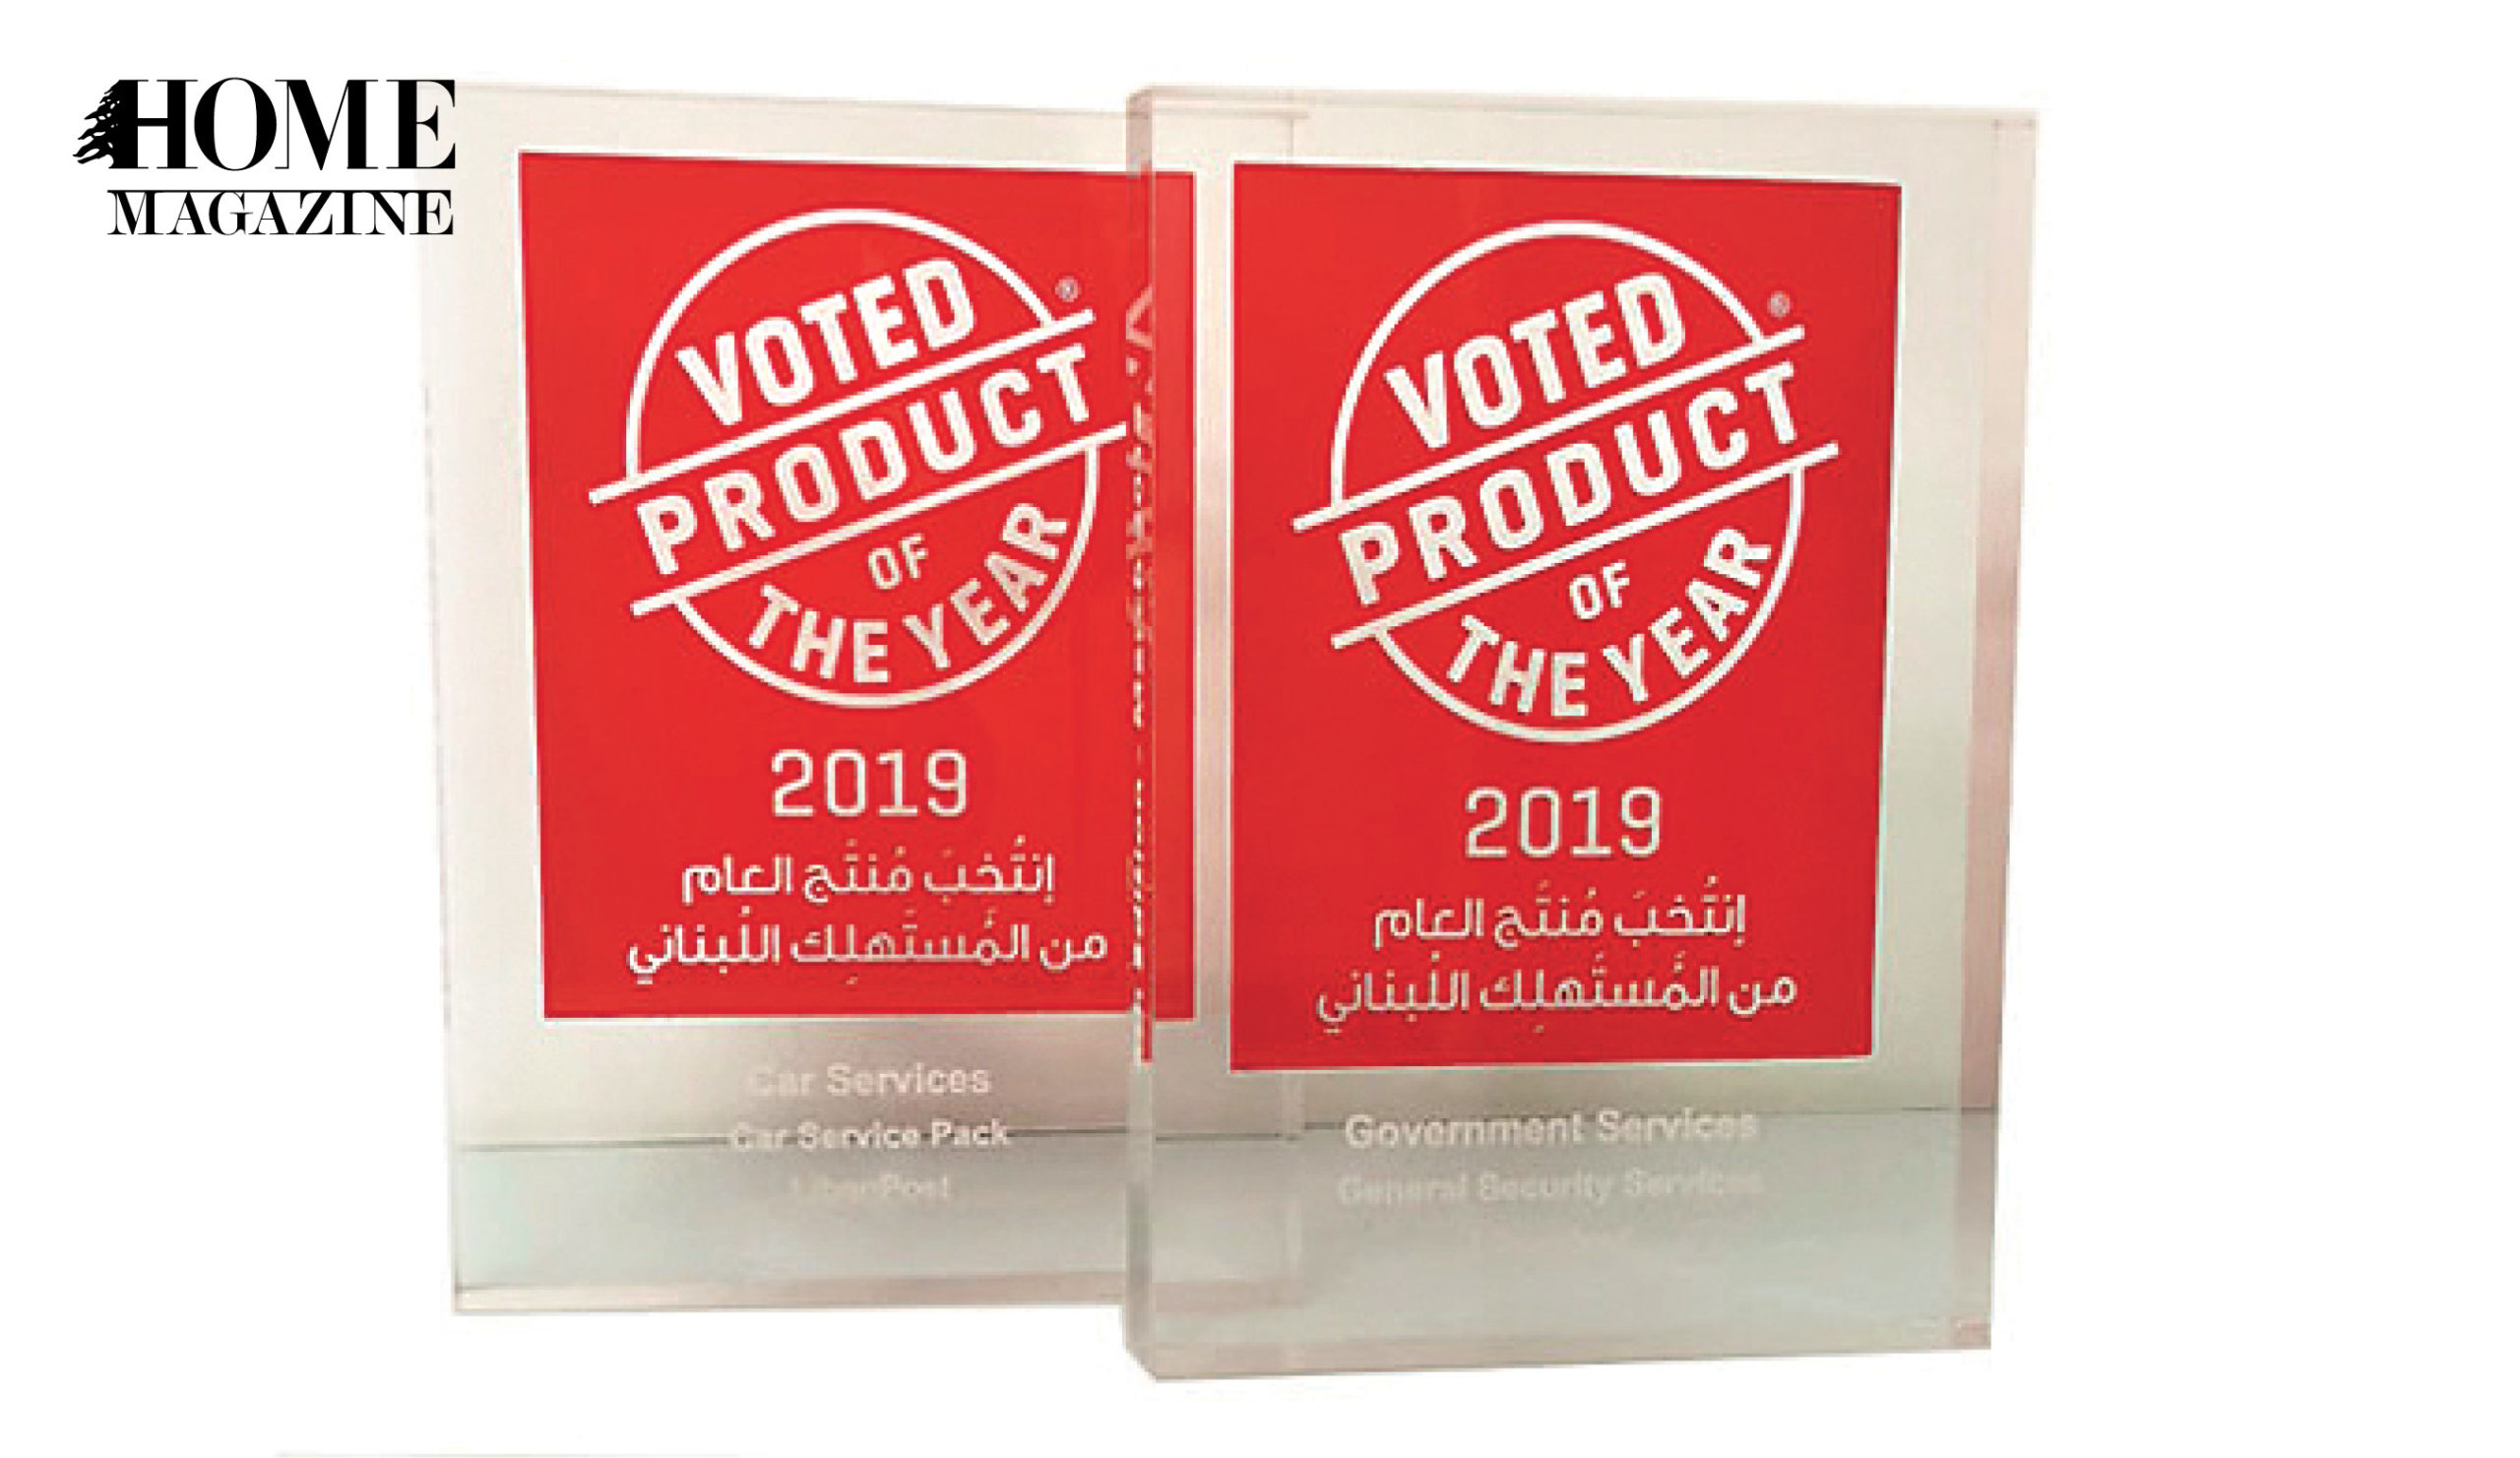 Red trophy with text Voted Product of the Year 2019